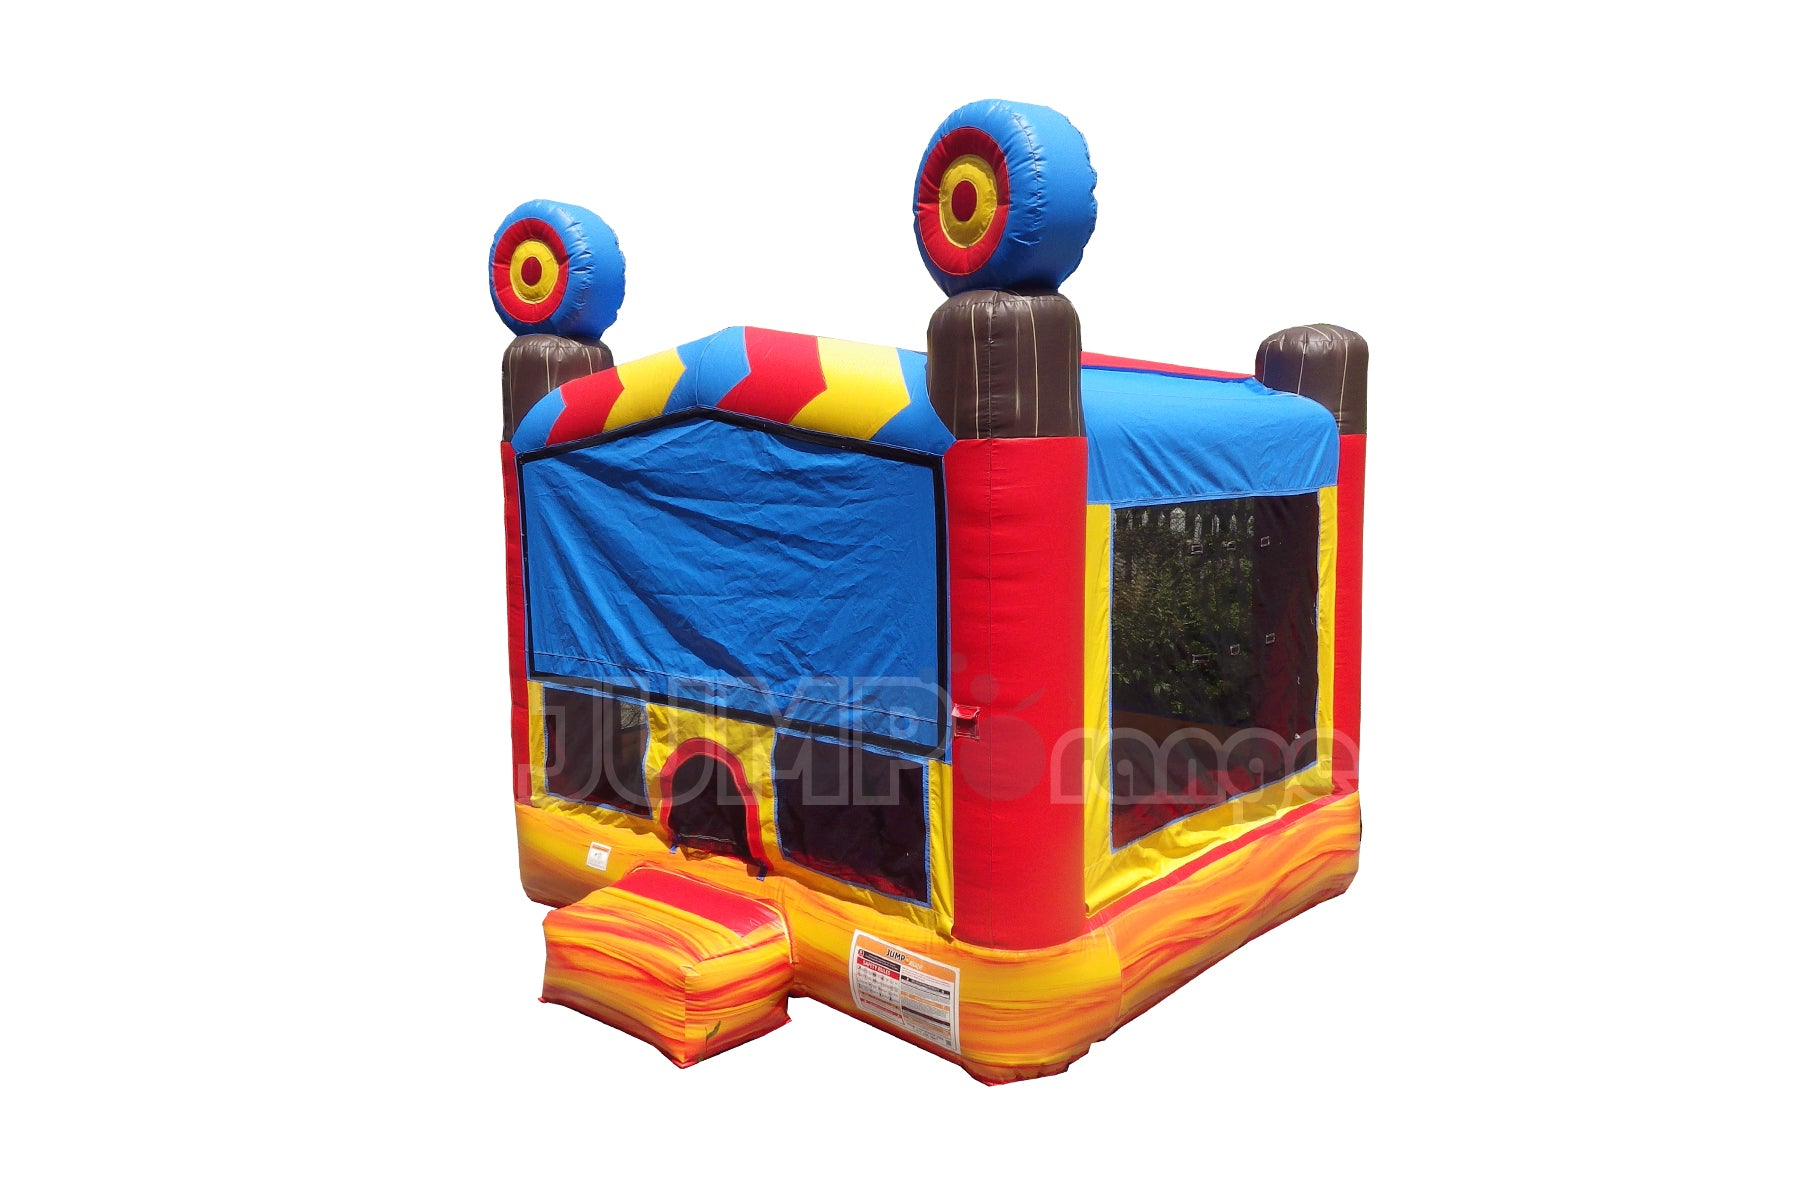 Target 13' x 13' Bounce House